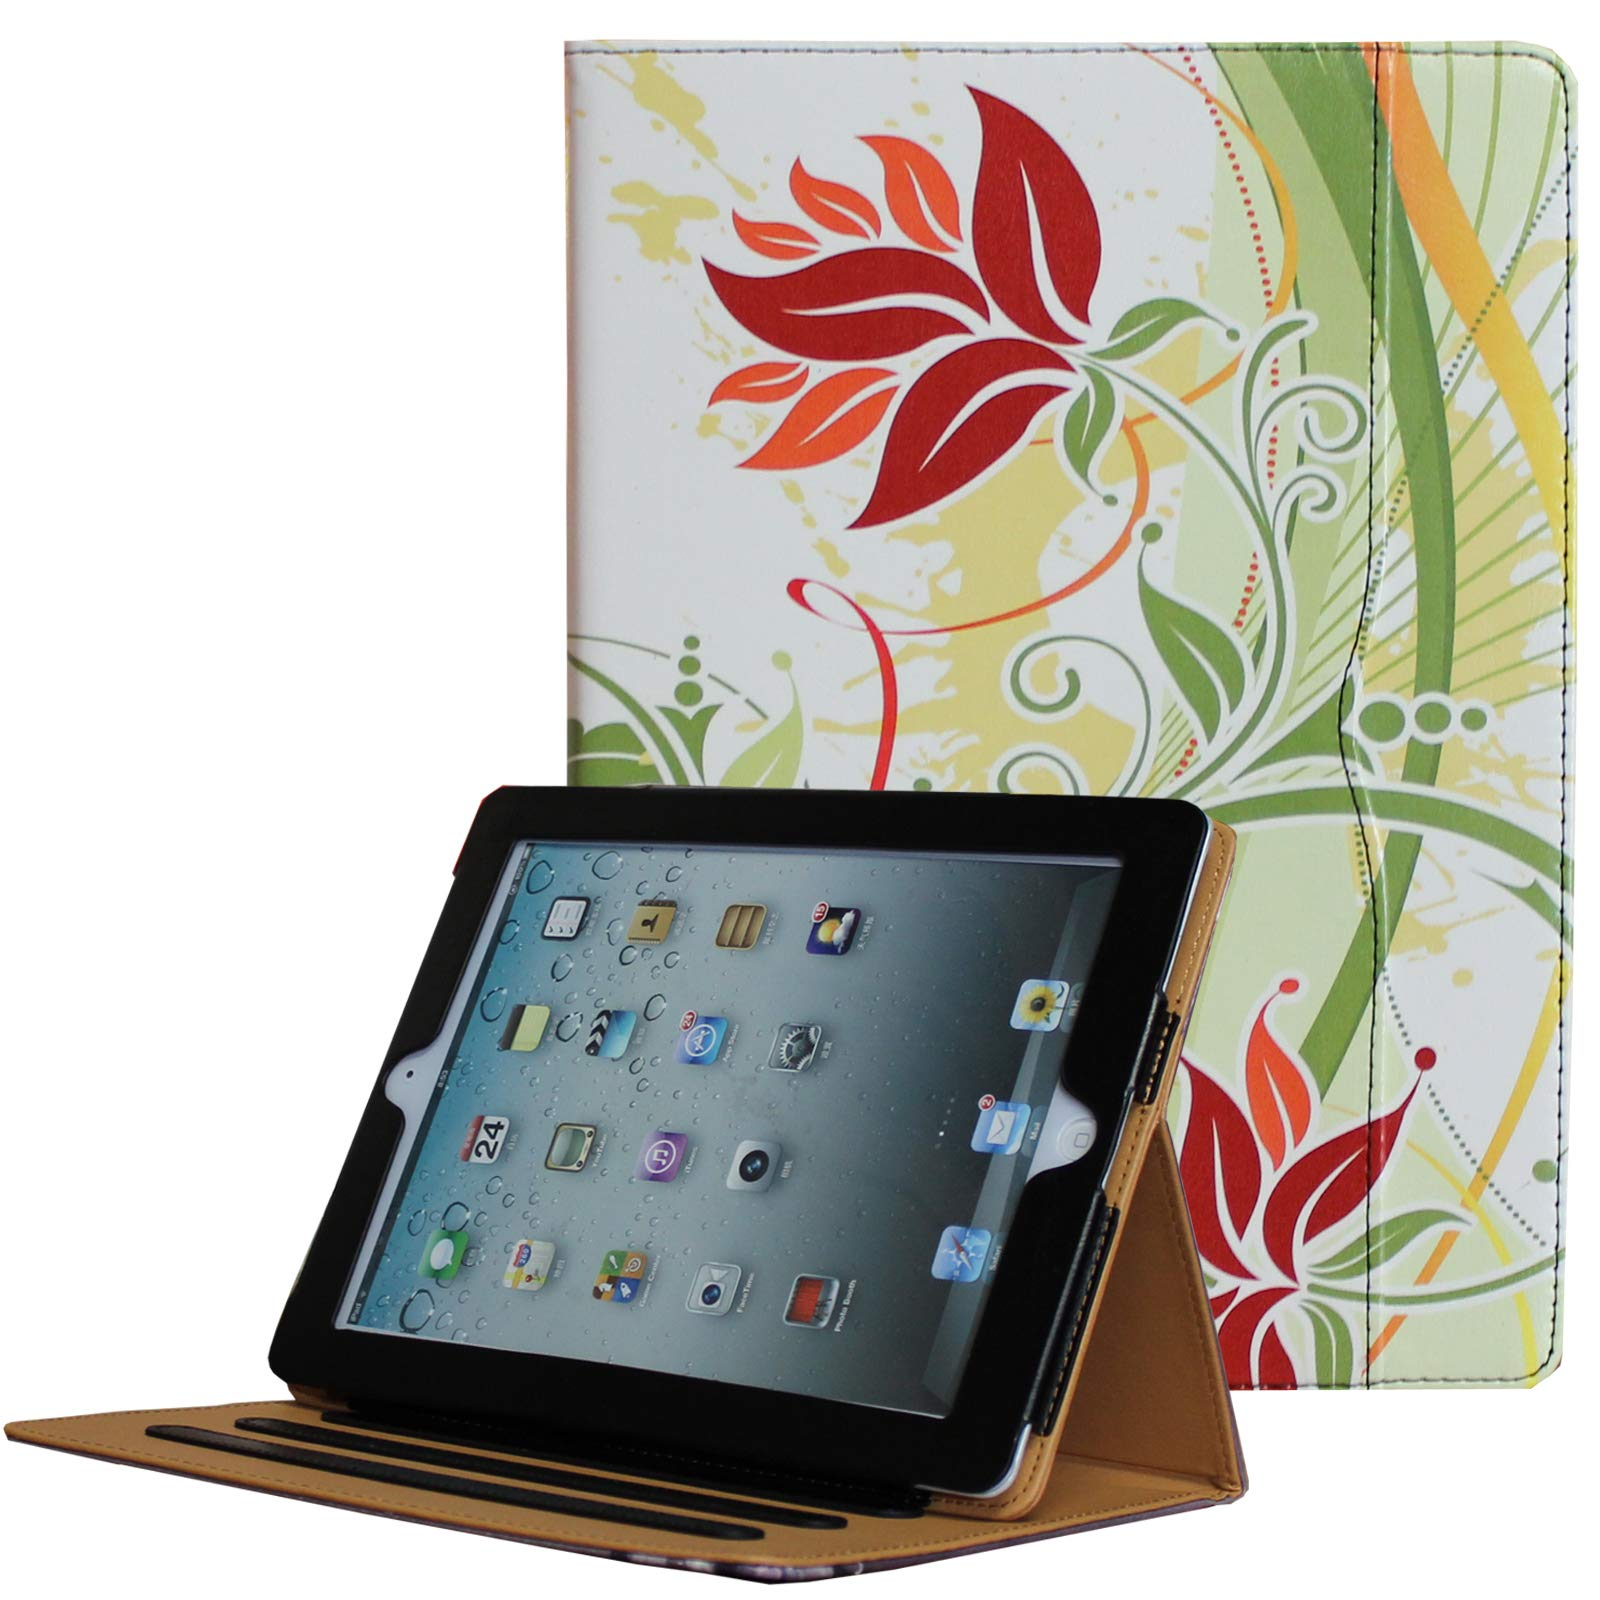 for iPad 9.7 6th/5th Generation 2018/2017, iPad Air/Air 2 Case, JYtrend Multi-Angle Viewing Stand Folio Smart Cover with Pocket for A1893 A1954 A1822 A1823 A1474 A1475 A1476 A1566 A1567